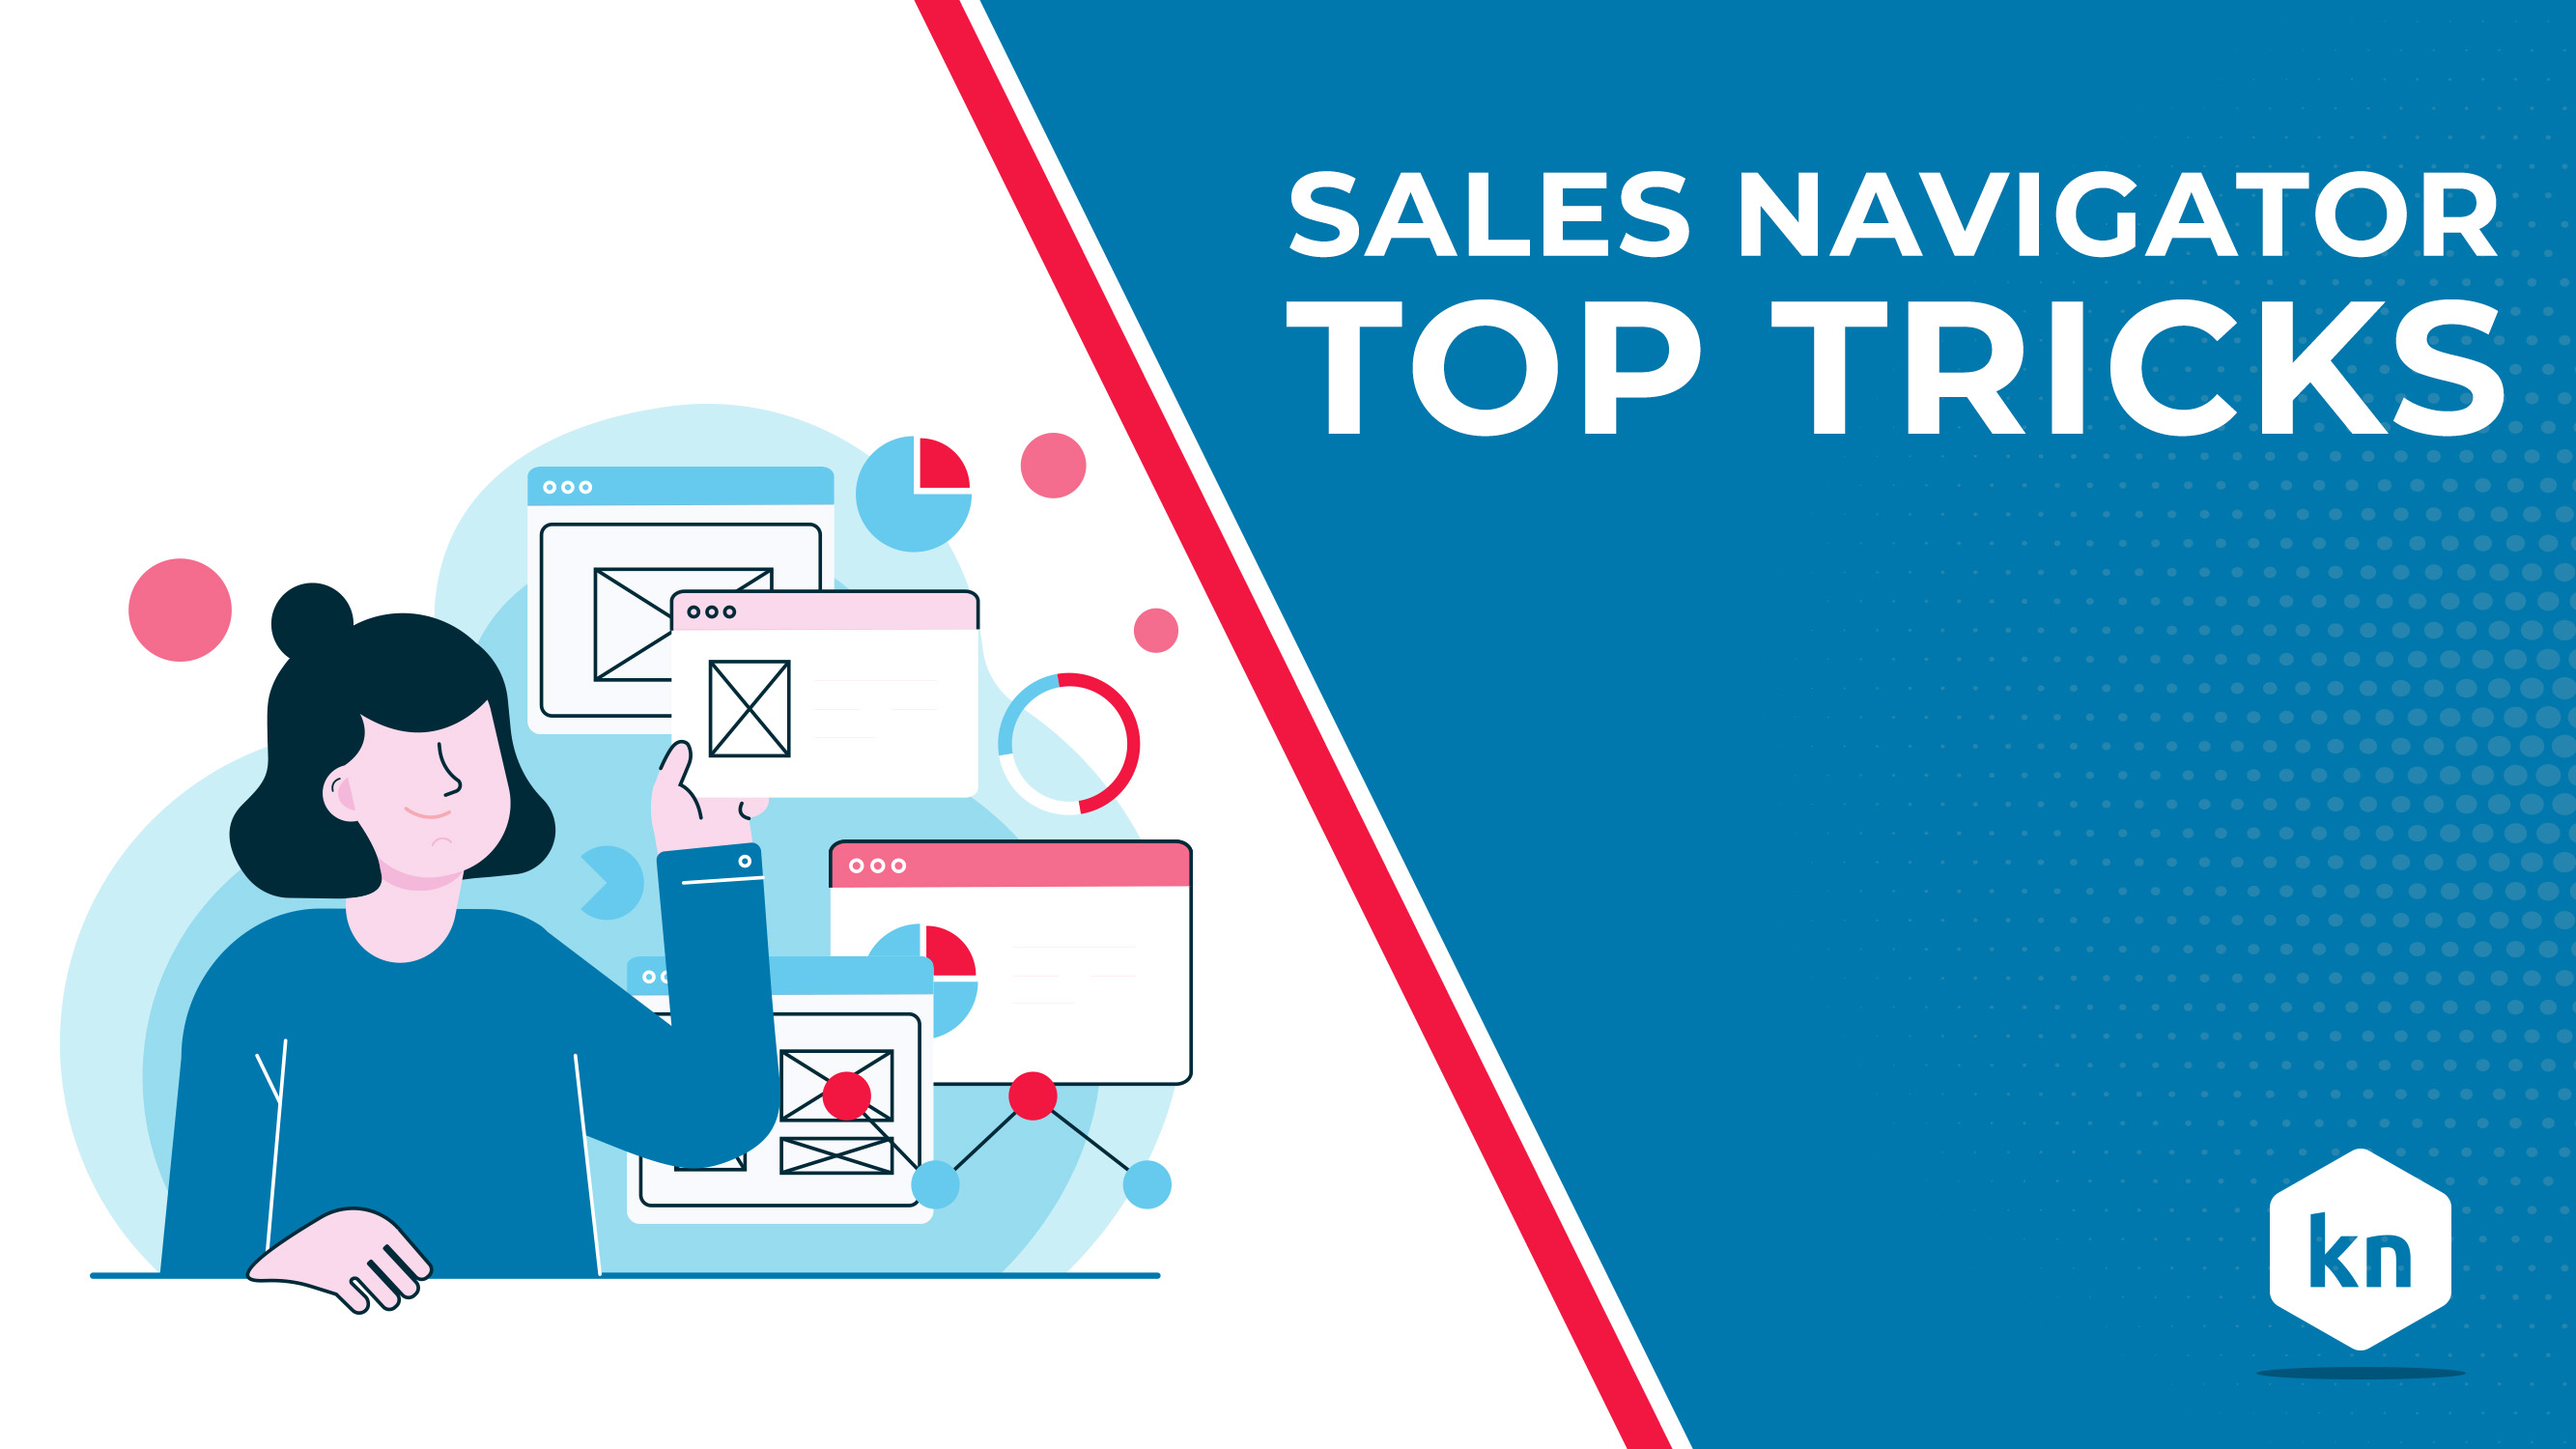 Sales Navigator Top-Tricks